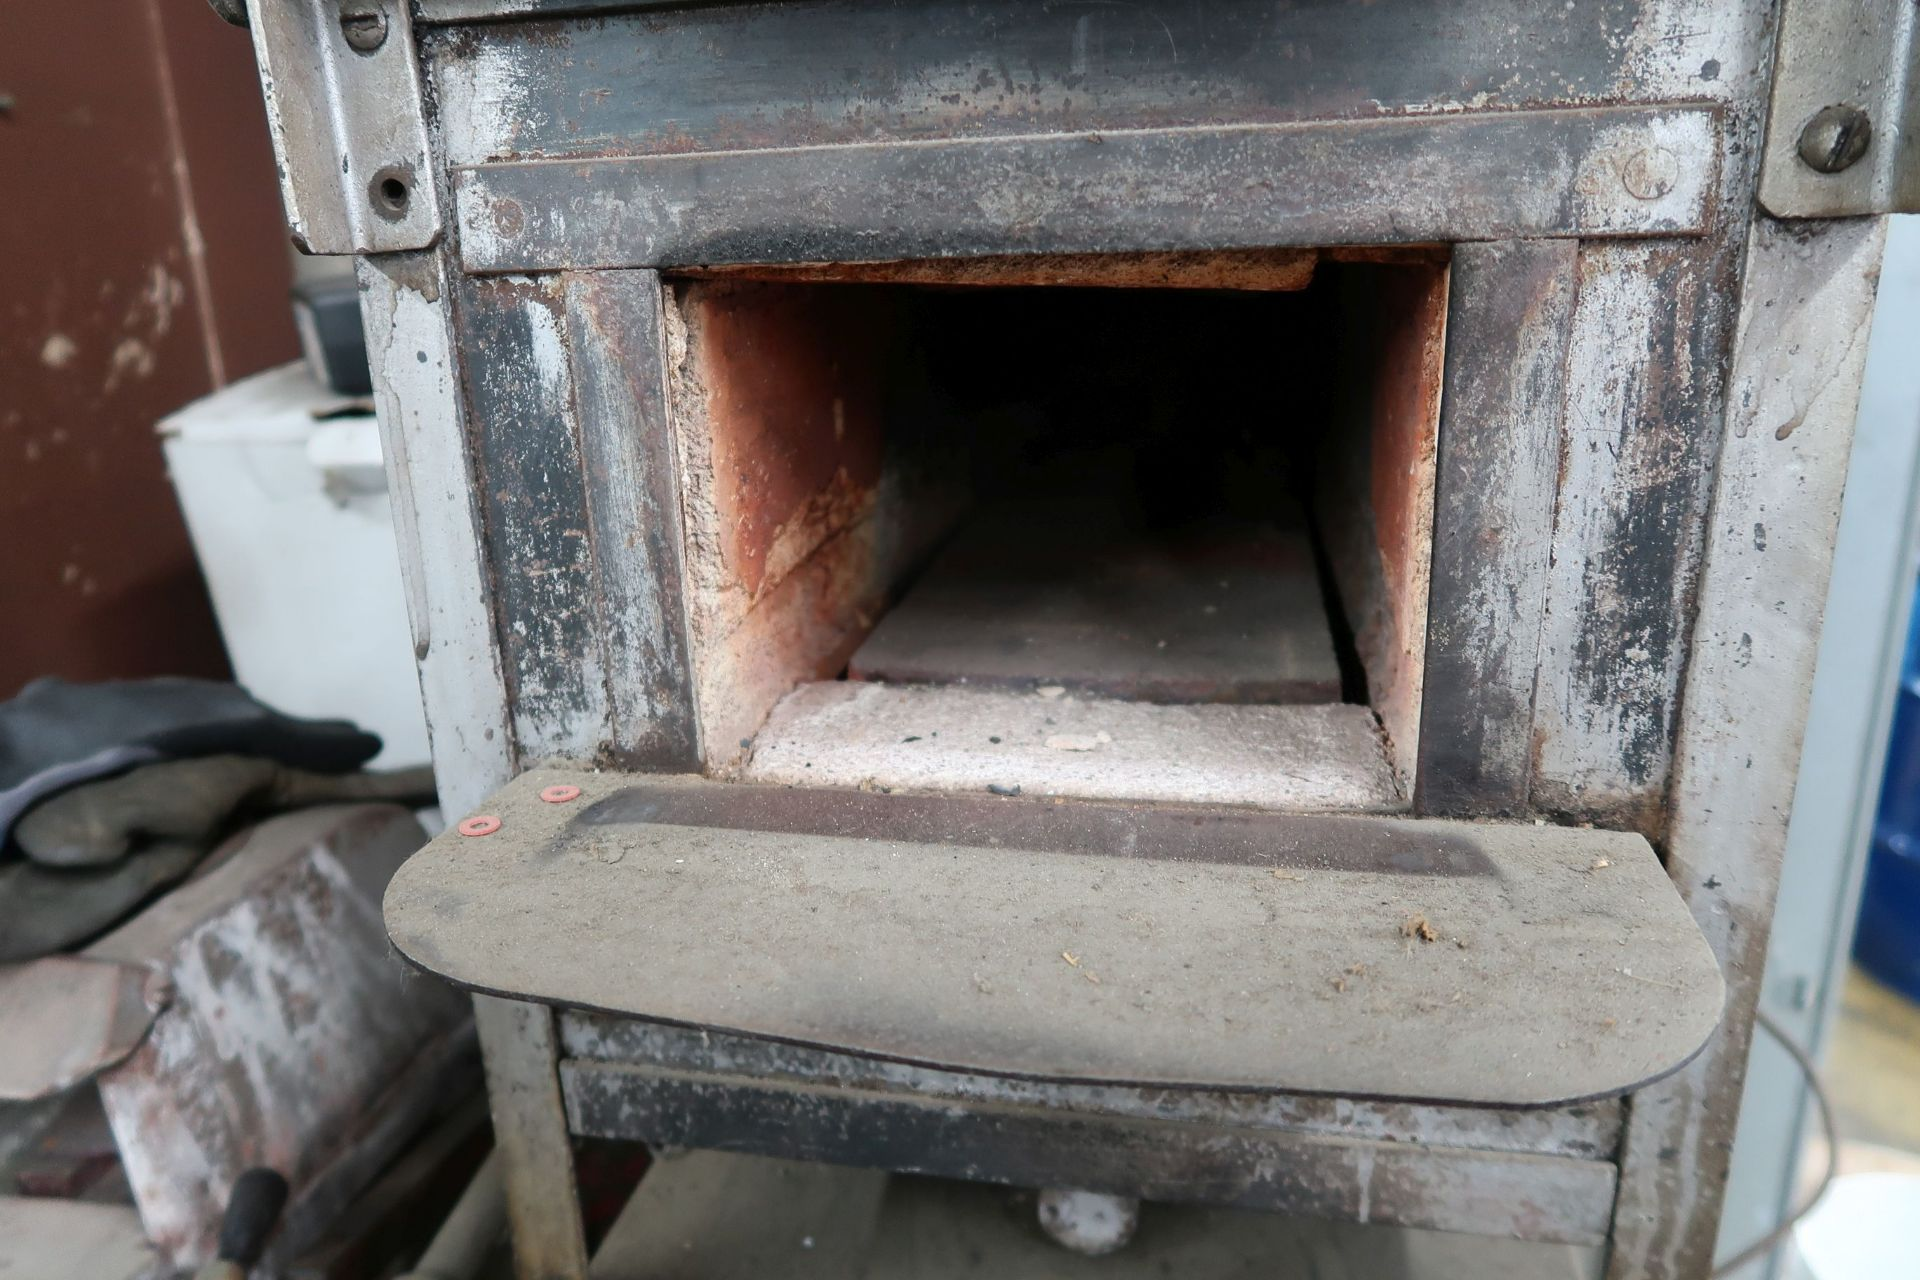 """KER & COMPANY NATURAL GAS OVEN; 7""""W X 5""""H X 15"""" DEEP, TO 2,000 DEGREES - Image 2 of 4"""